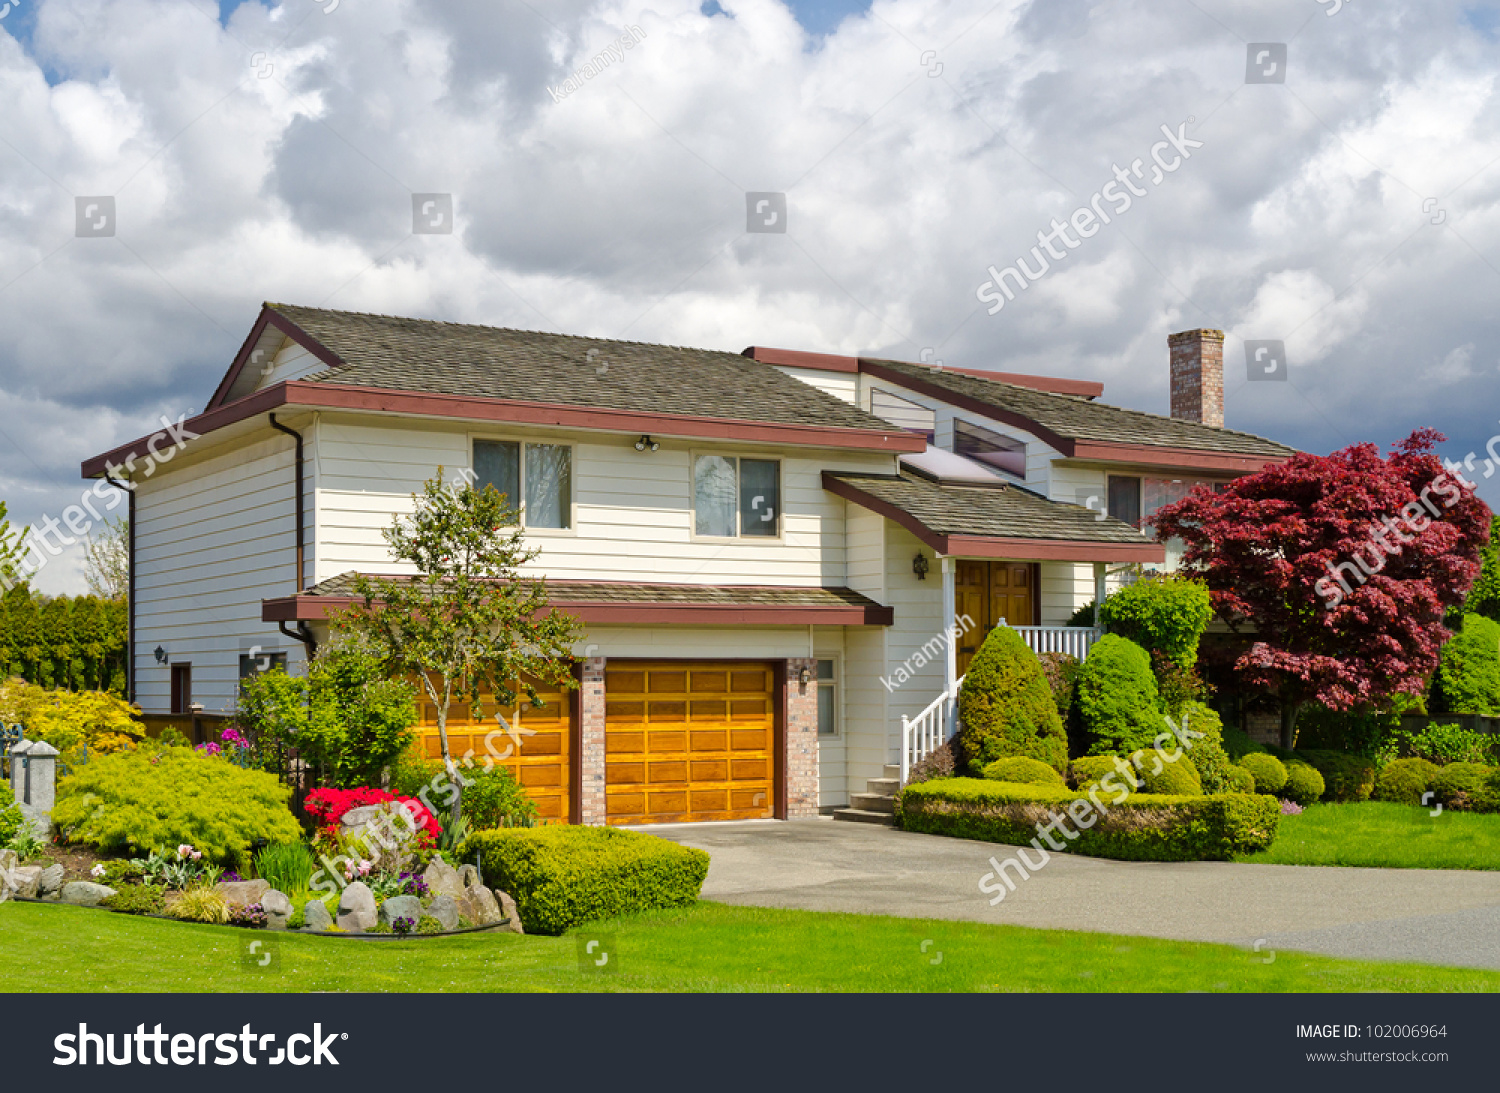 Luxury houses nice outdoor landscape vancouver stock photo for Nice houses in canada